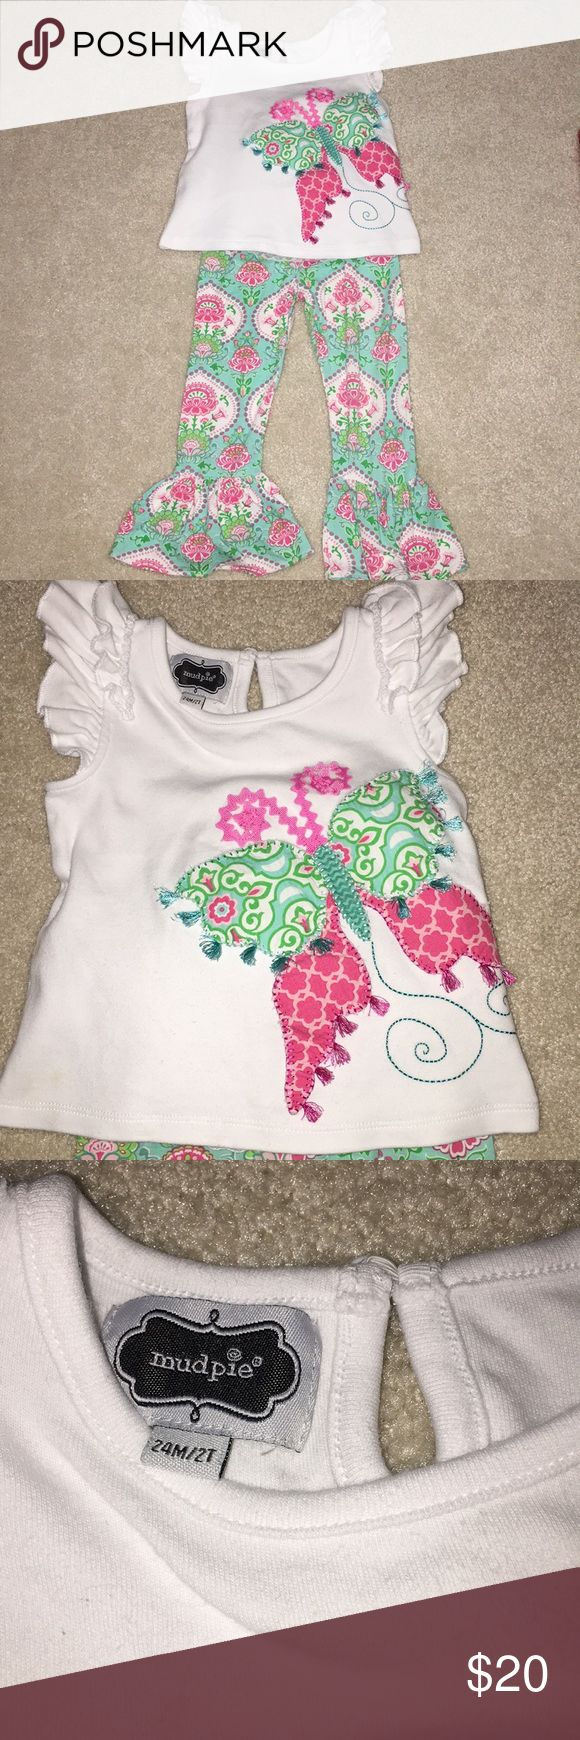 Mud pie outfit Paisley bell bottom pants. White top with beautiful butterfly. The back has amazing ruffle detail with pink bow. One of my favorite outfits!! In perfect condition. Worn twice. Mud Pie Matching Sets